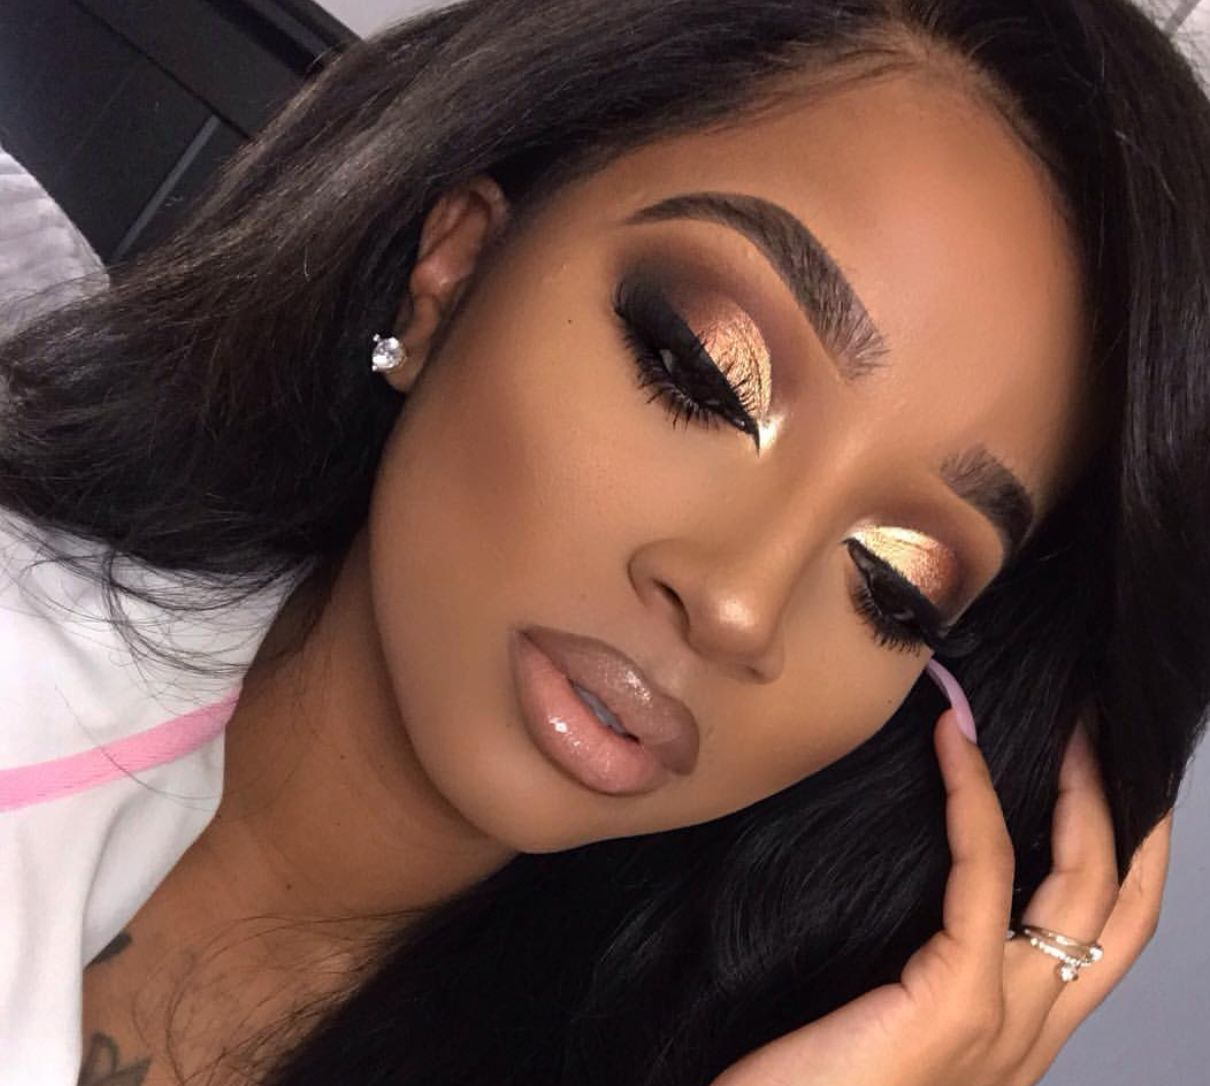 Makeup for black women (With images) Prom makeup looks